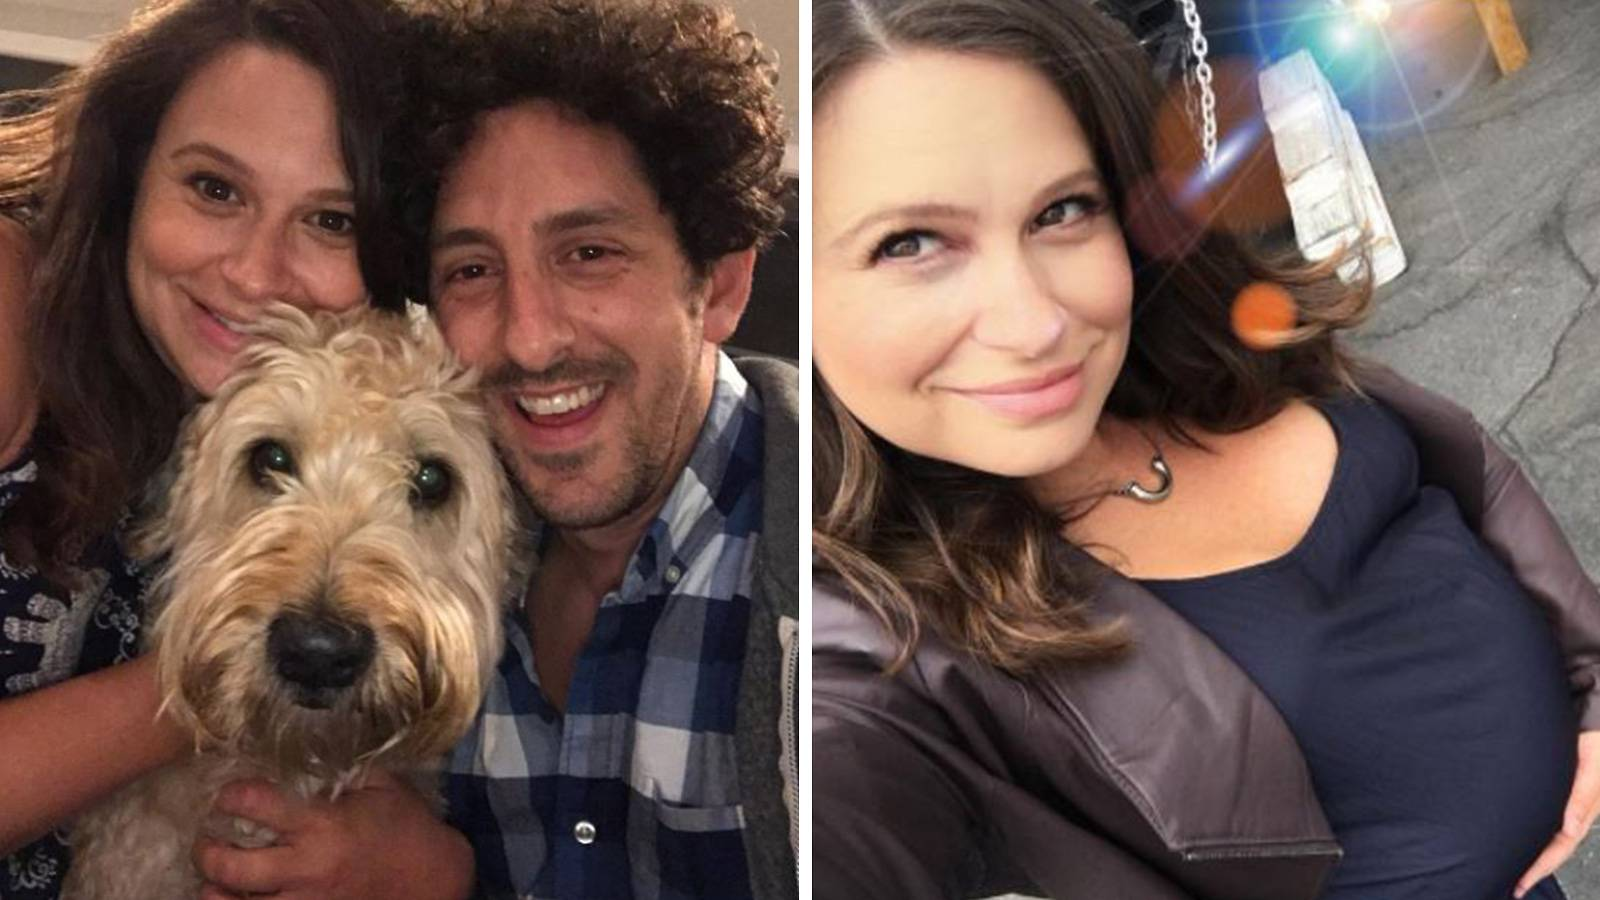 Katie Lowes, 35, and Adam Shapiro